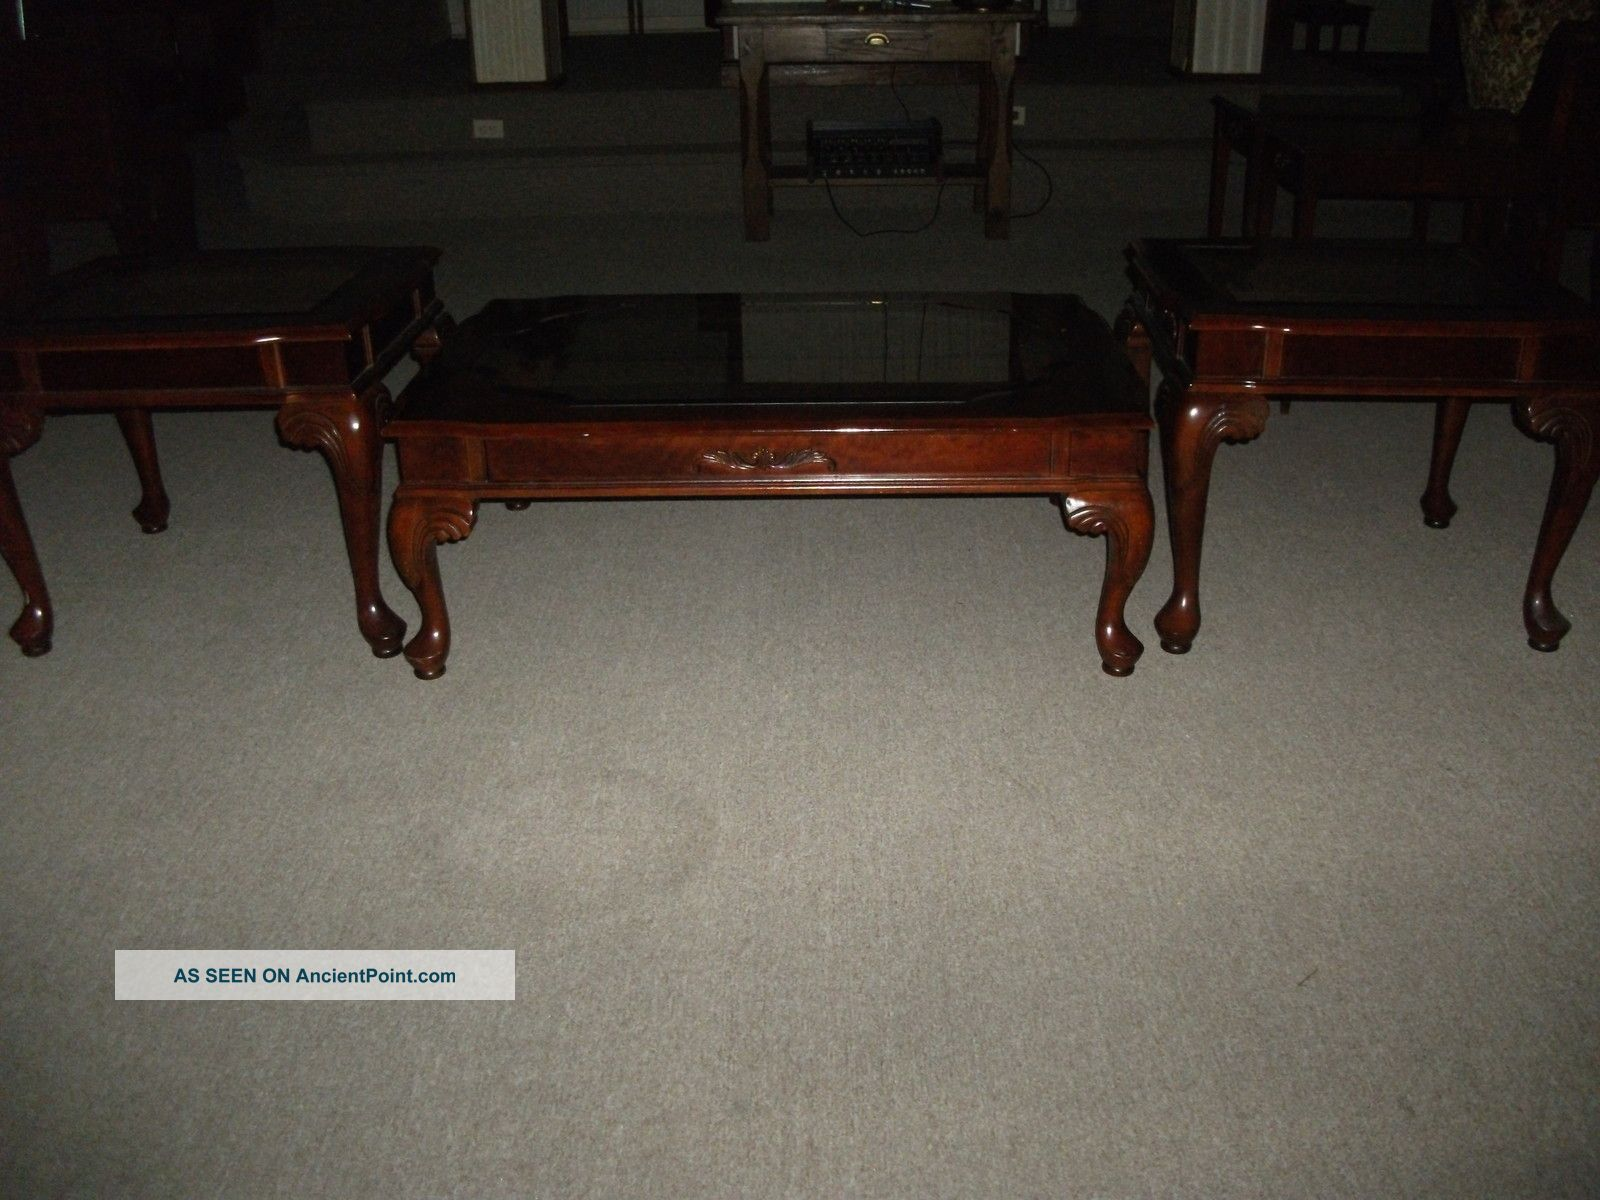 Stunning Home Room Decor Mahogany Queen Anne Coffee & End Tables 1800-1899  1600 x 1200 · 247 kB · jpeg